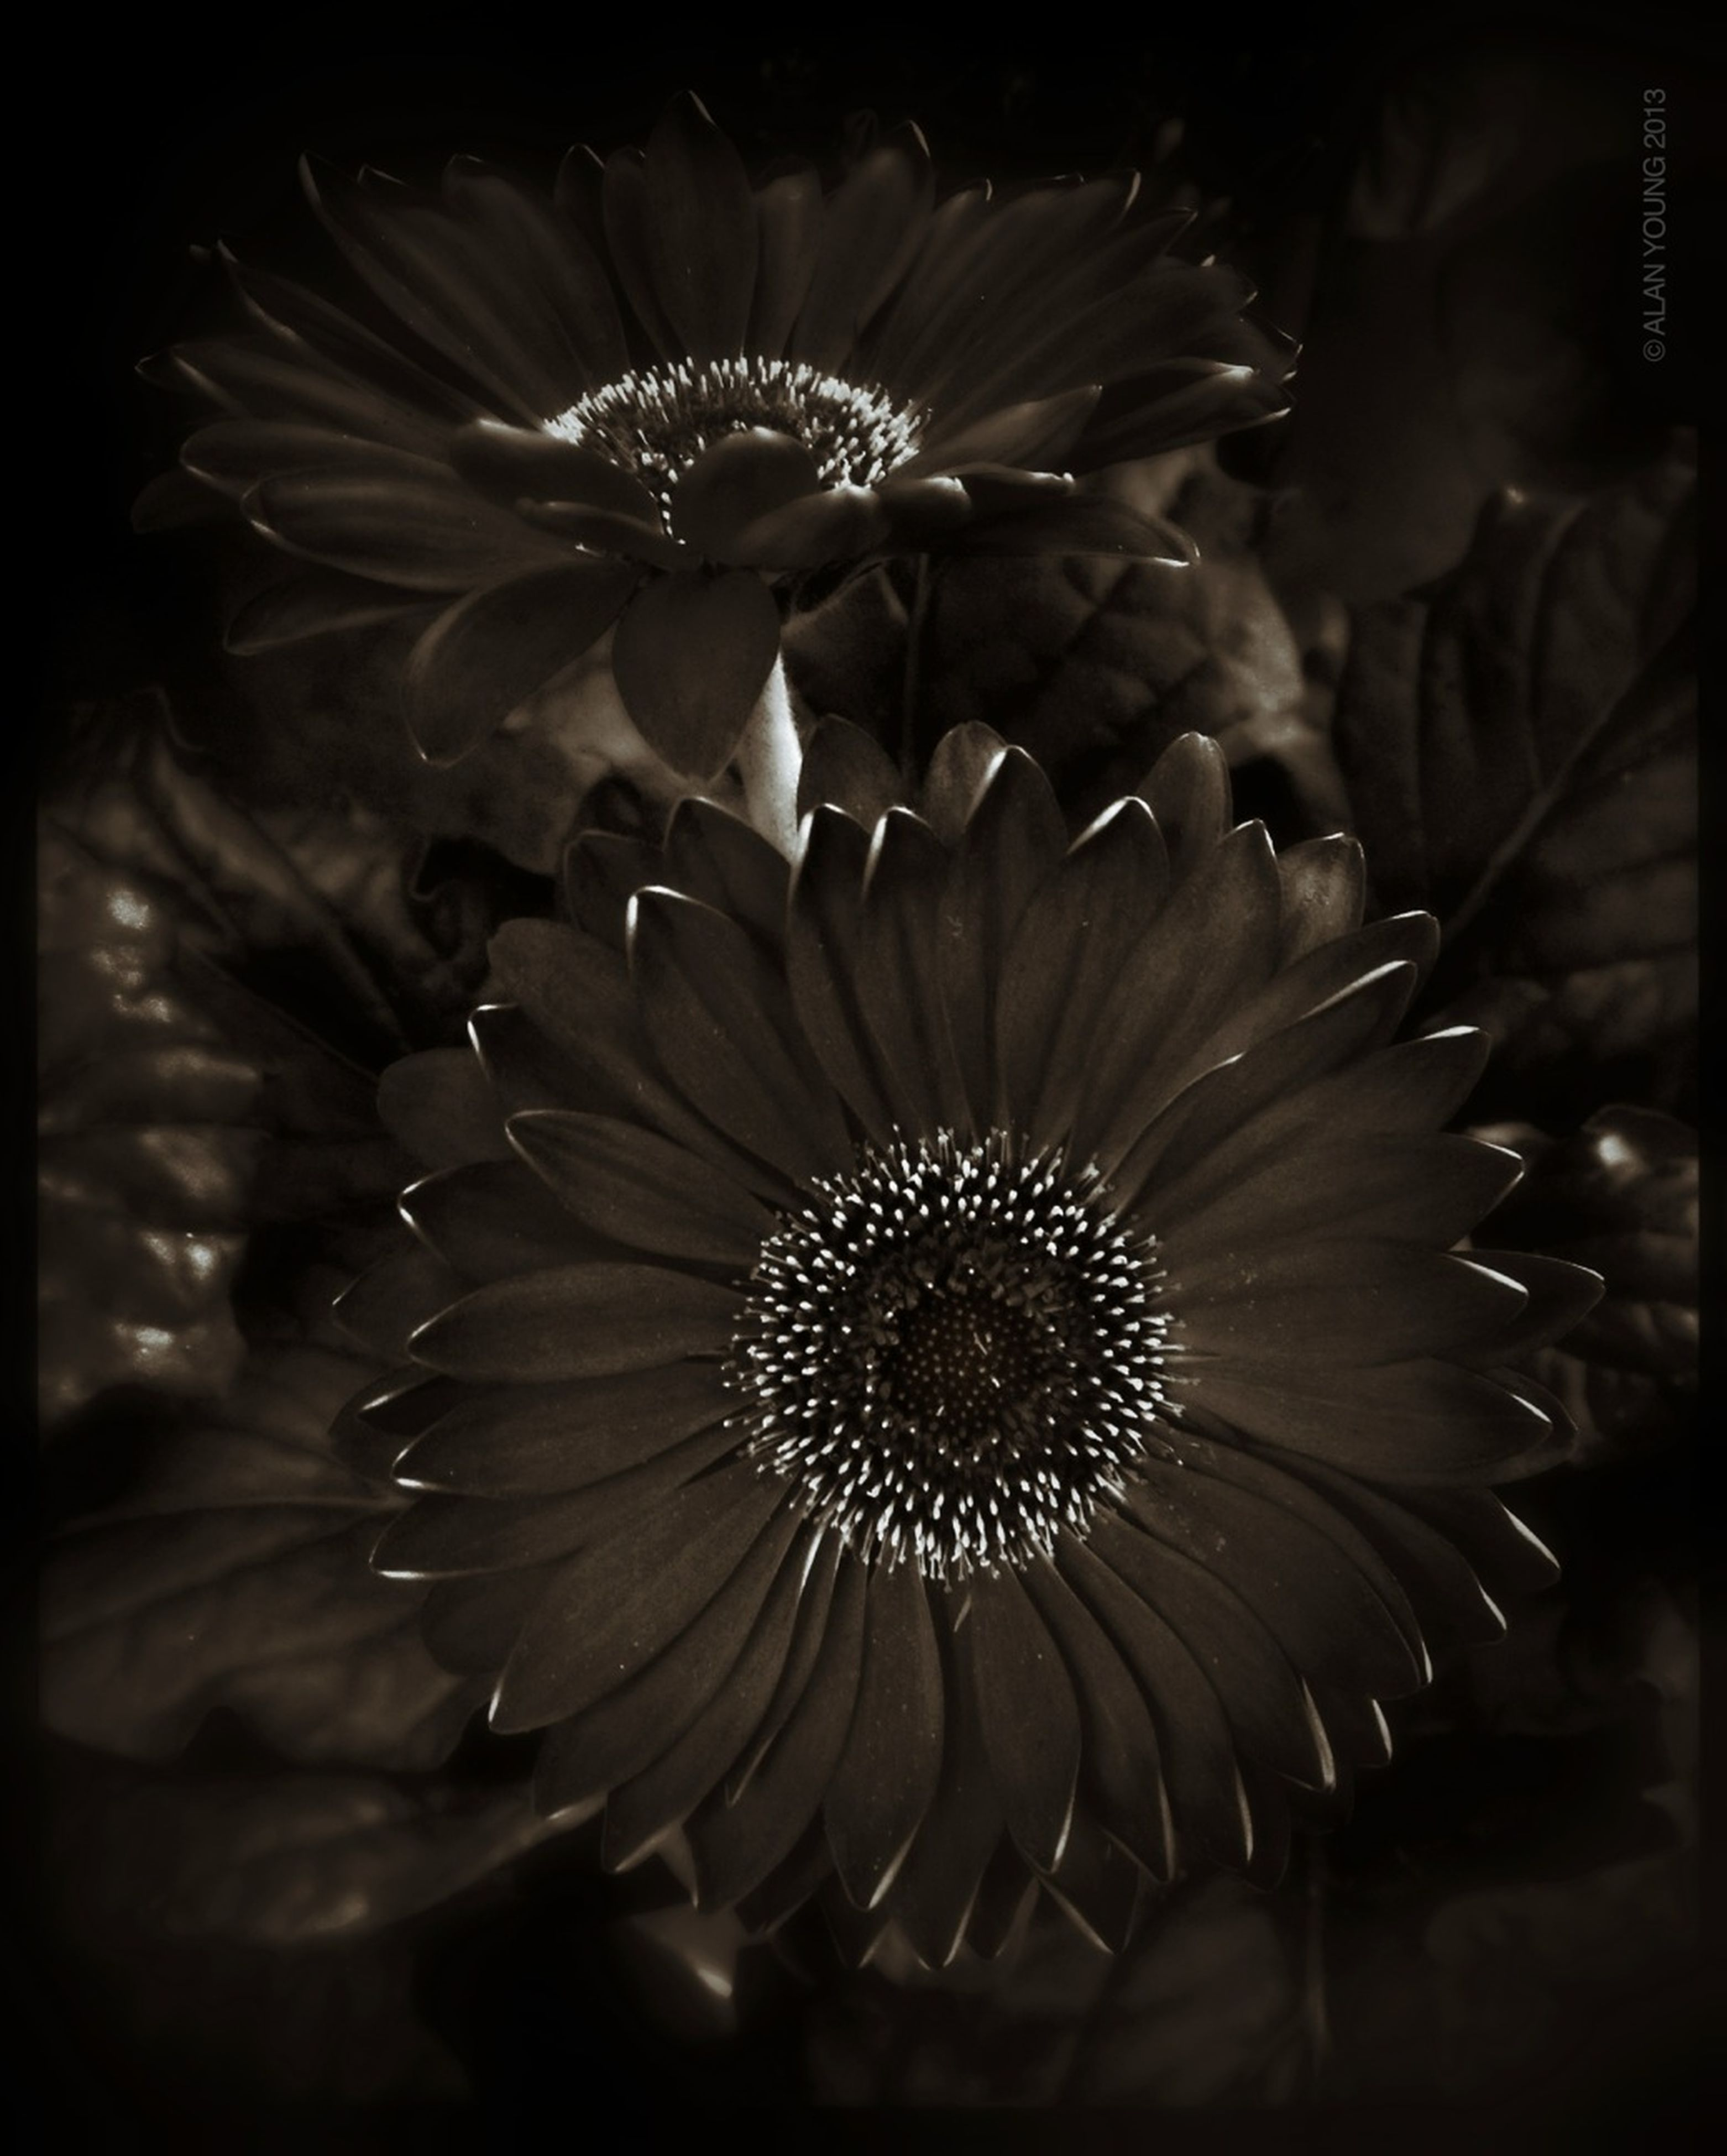 flower, fragility, close-up, flower head, freshness, petal, growth, beauty in nature, transfer print, auto post production filter, nature, focus on foreground, plant, blooming, night, selective focus, in bloom, no people, pollen, single flower